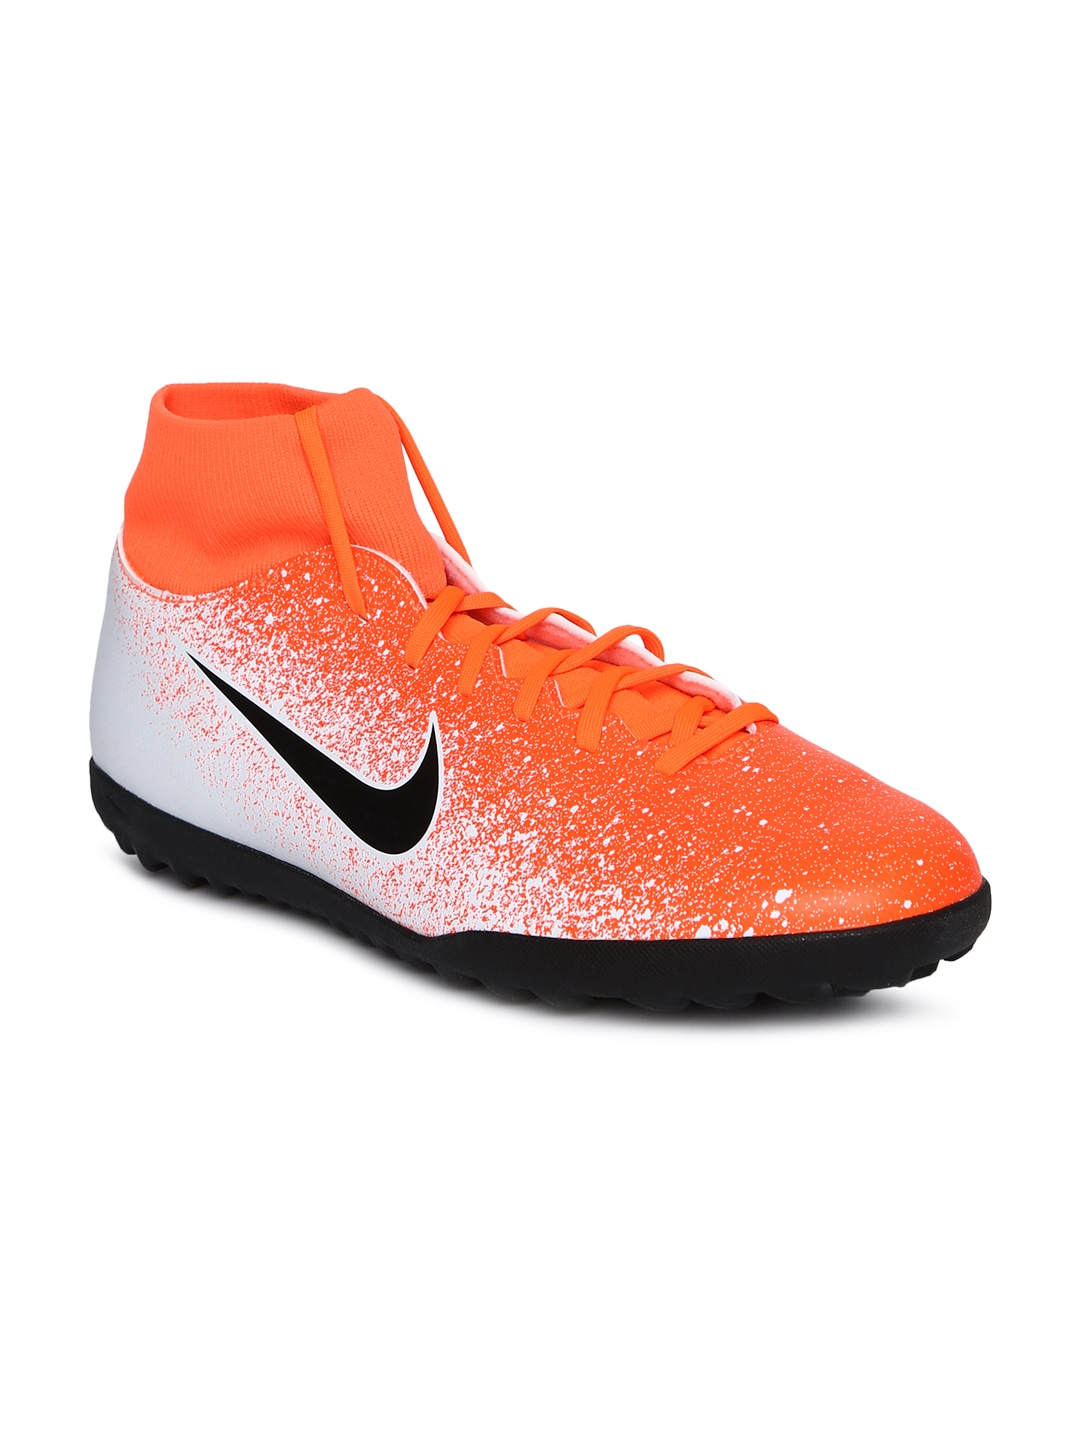 save off fed35 42fc4 Orange Sports Shoes - Buy Orange Sports Shoes online in India